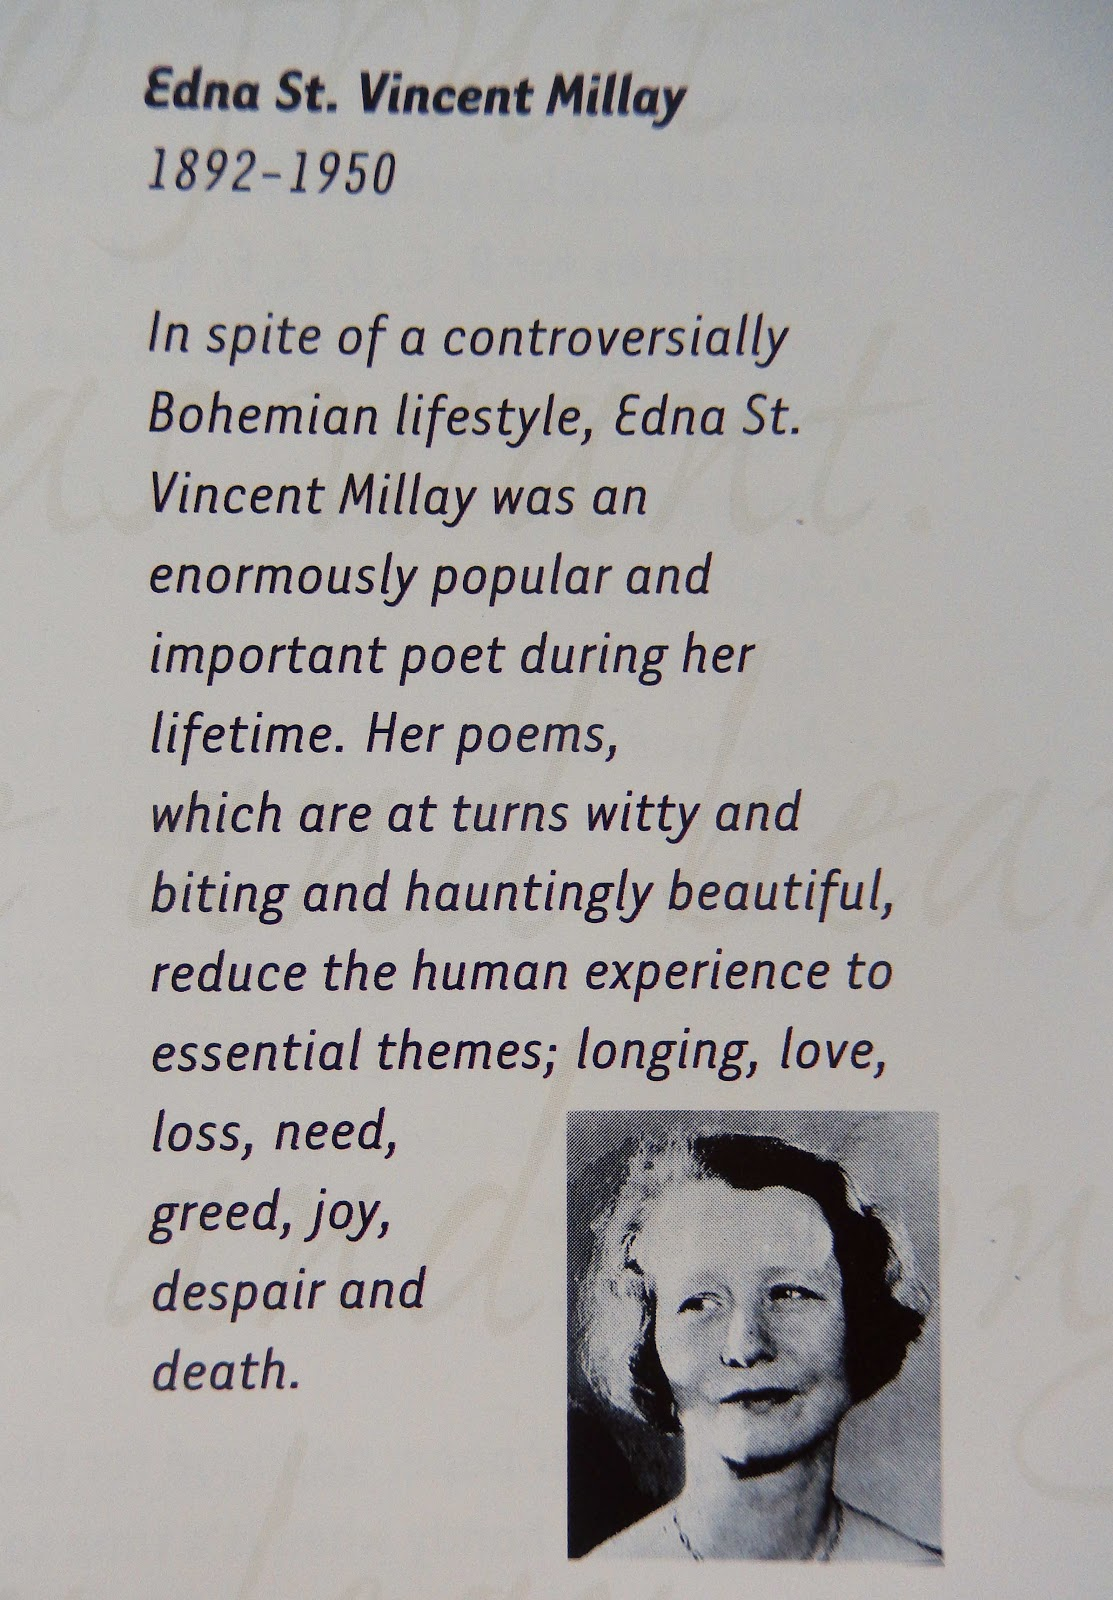 poetry and theme of travel by edna stvincent millay Edna st vincent millay (1892-1950) was an american poet and playwright born in rockland, maine, her mother taught her to write poetry when she was four years old.